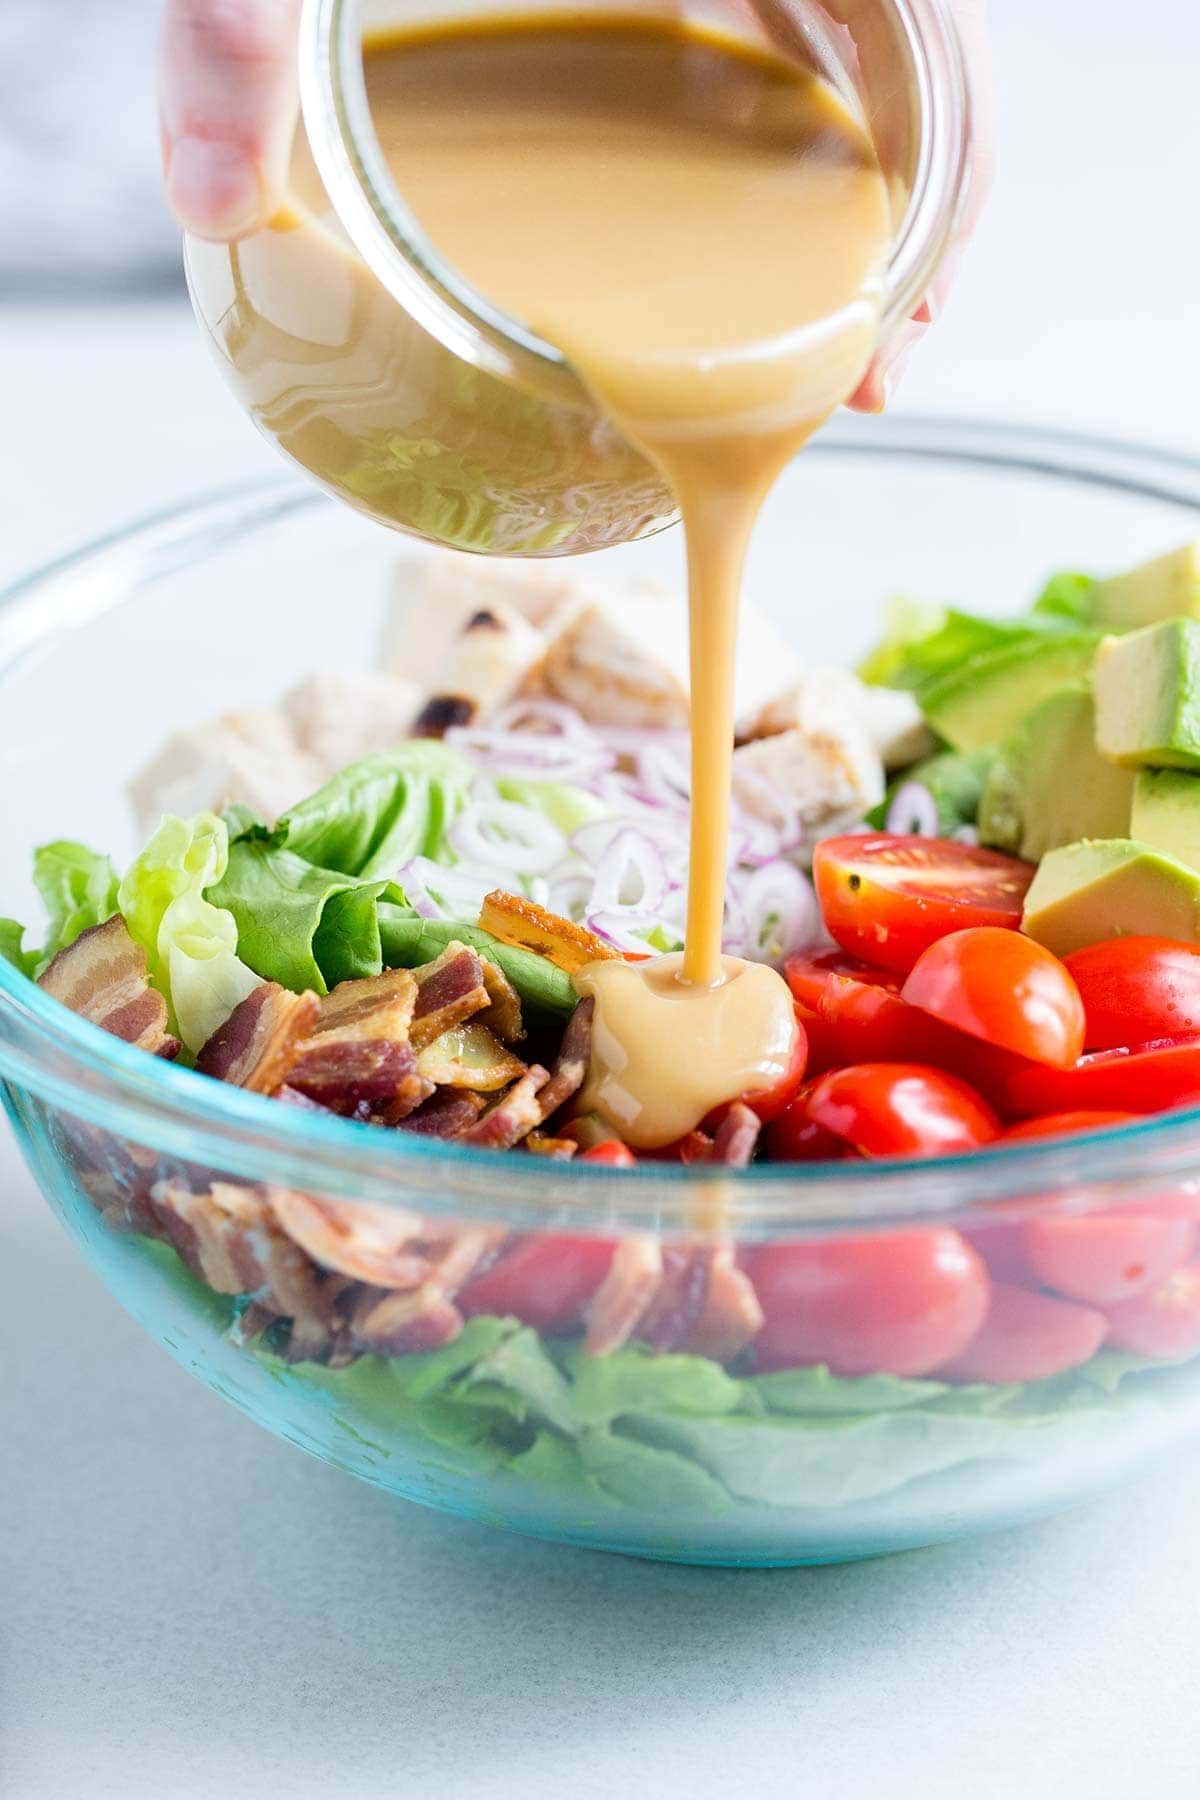 Honey mustard dressing being poured over a large salad.